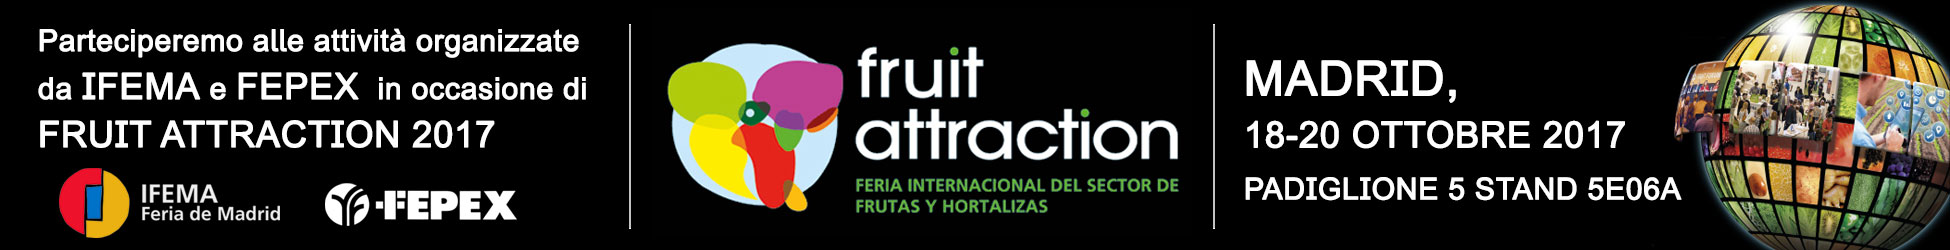 Fruit Attraction 2017.jpg